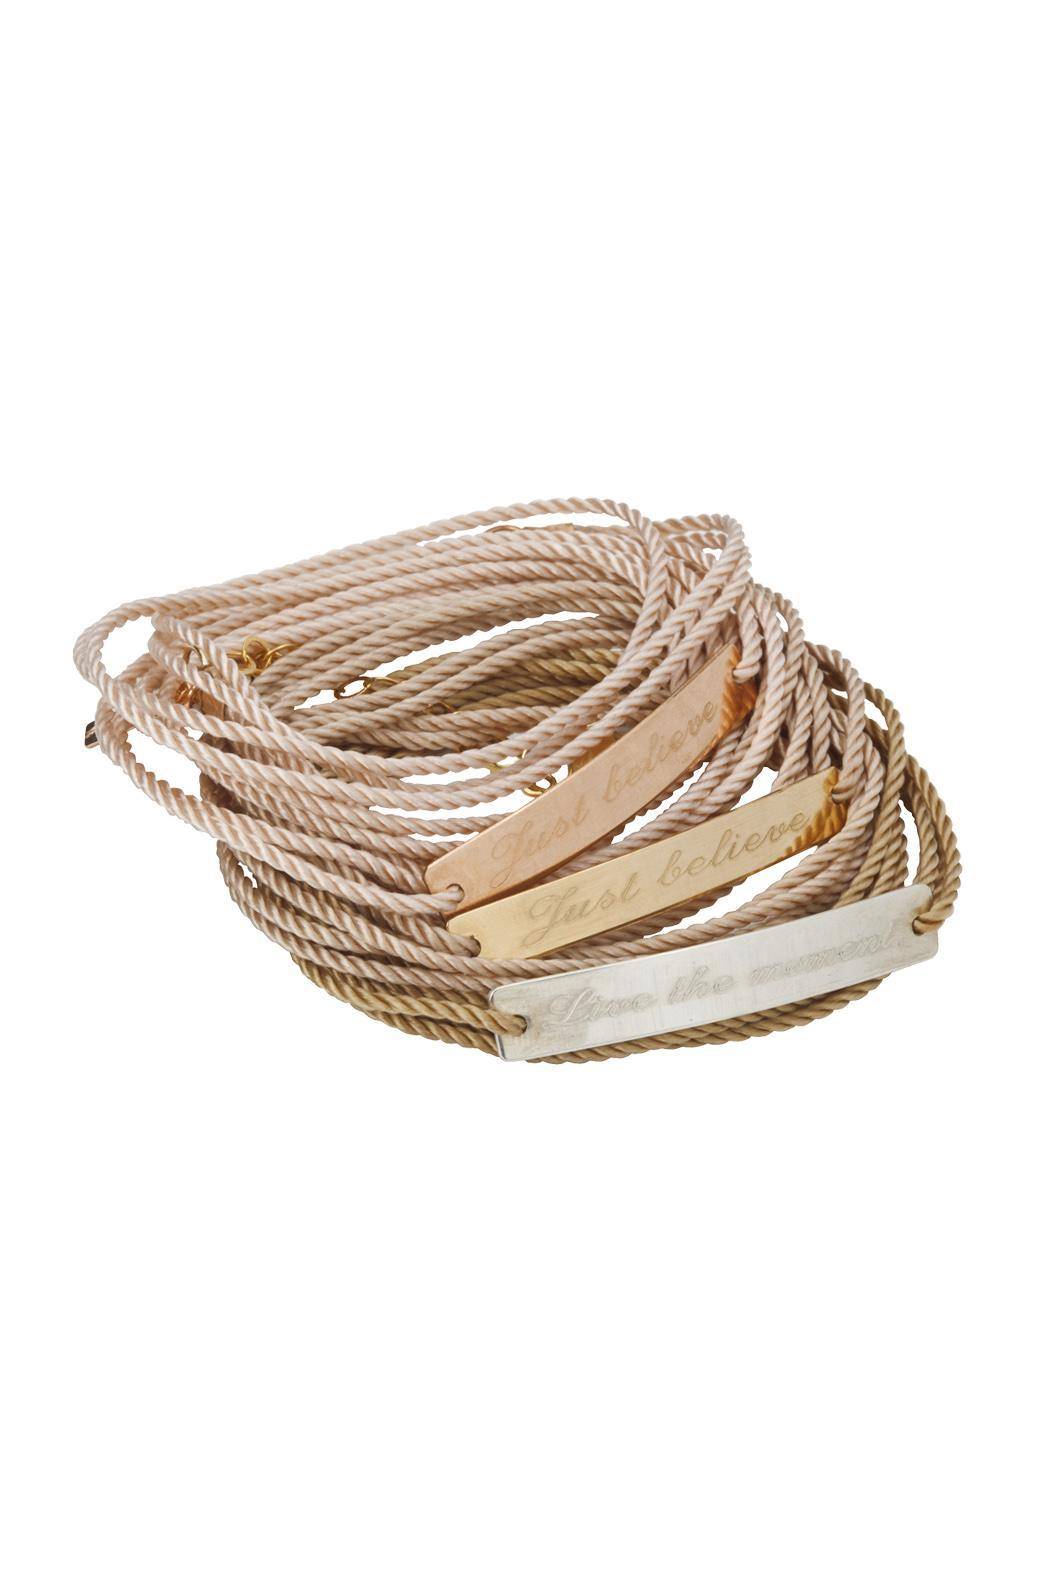 Just Believe Jewelry Cord Wrap Bracelet - Front Cropped Image